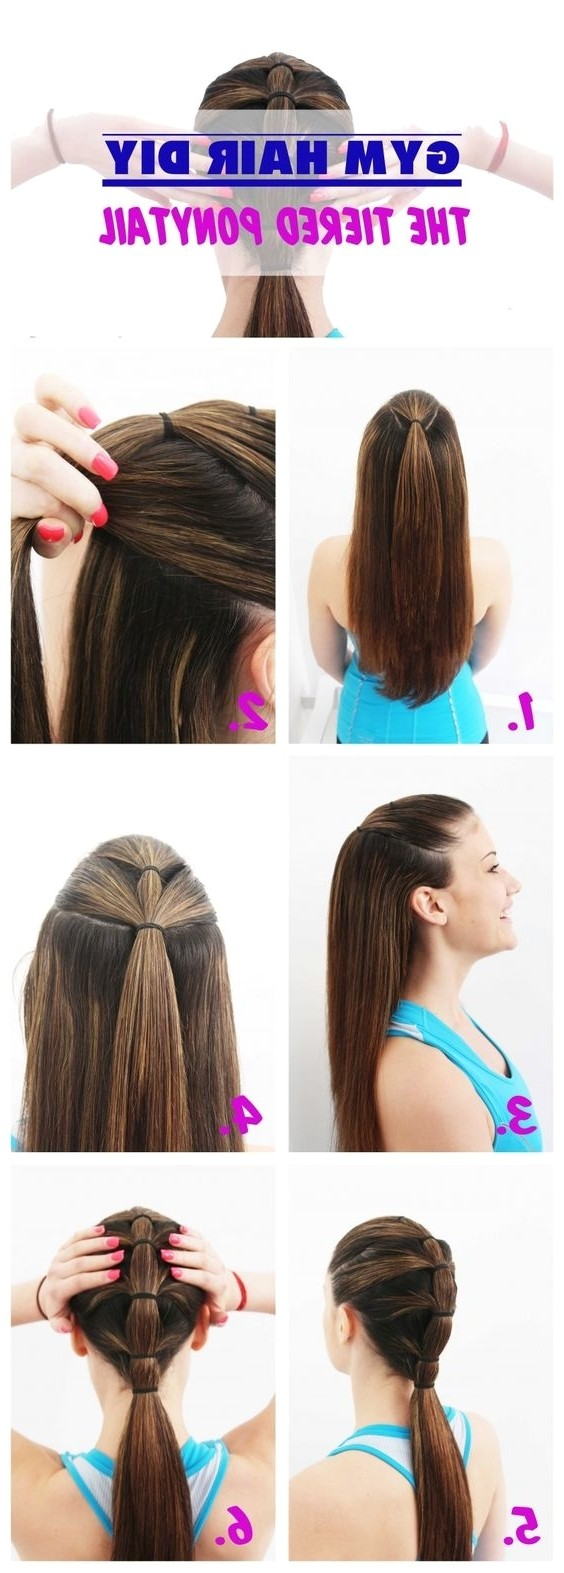 ways to do hairstyles